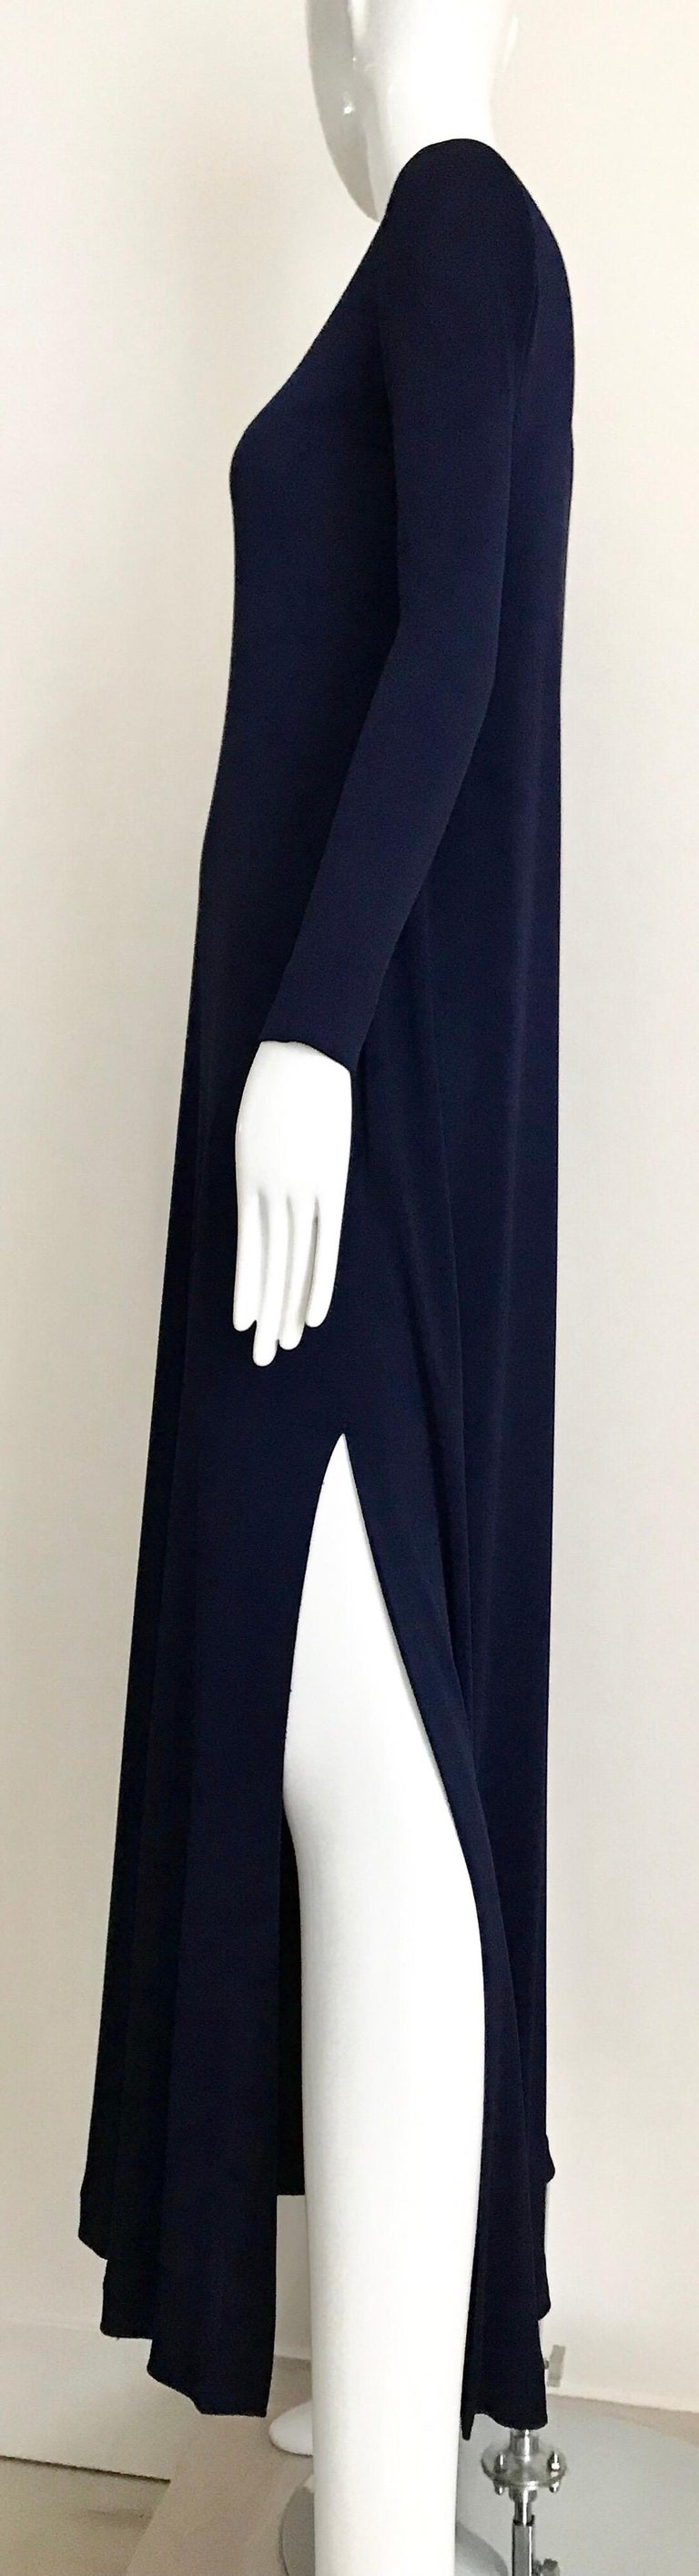 1970s Halston Blue Jersey Dress In Good Condition For Sale In Beverly Hills, CA